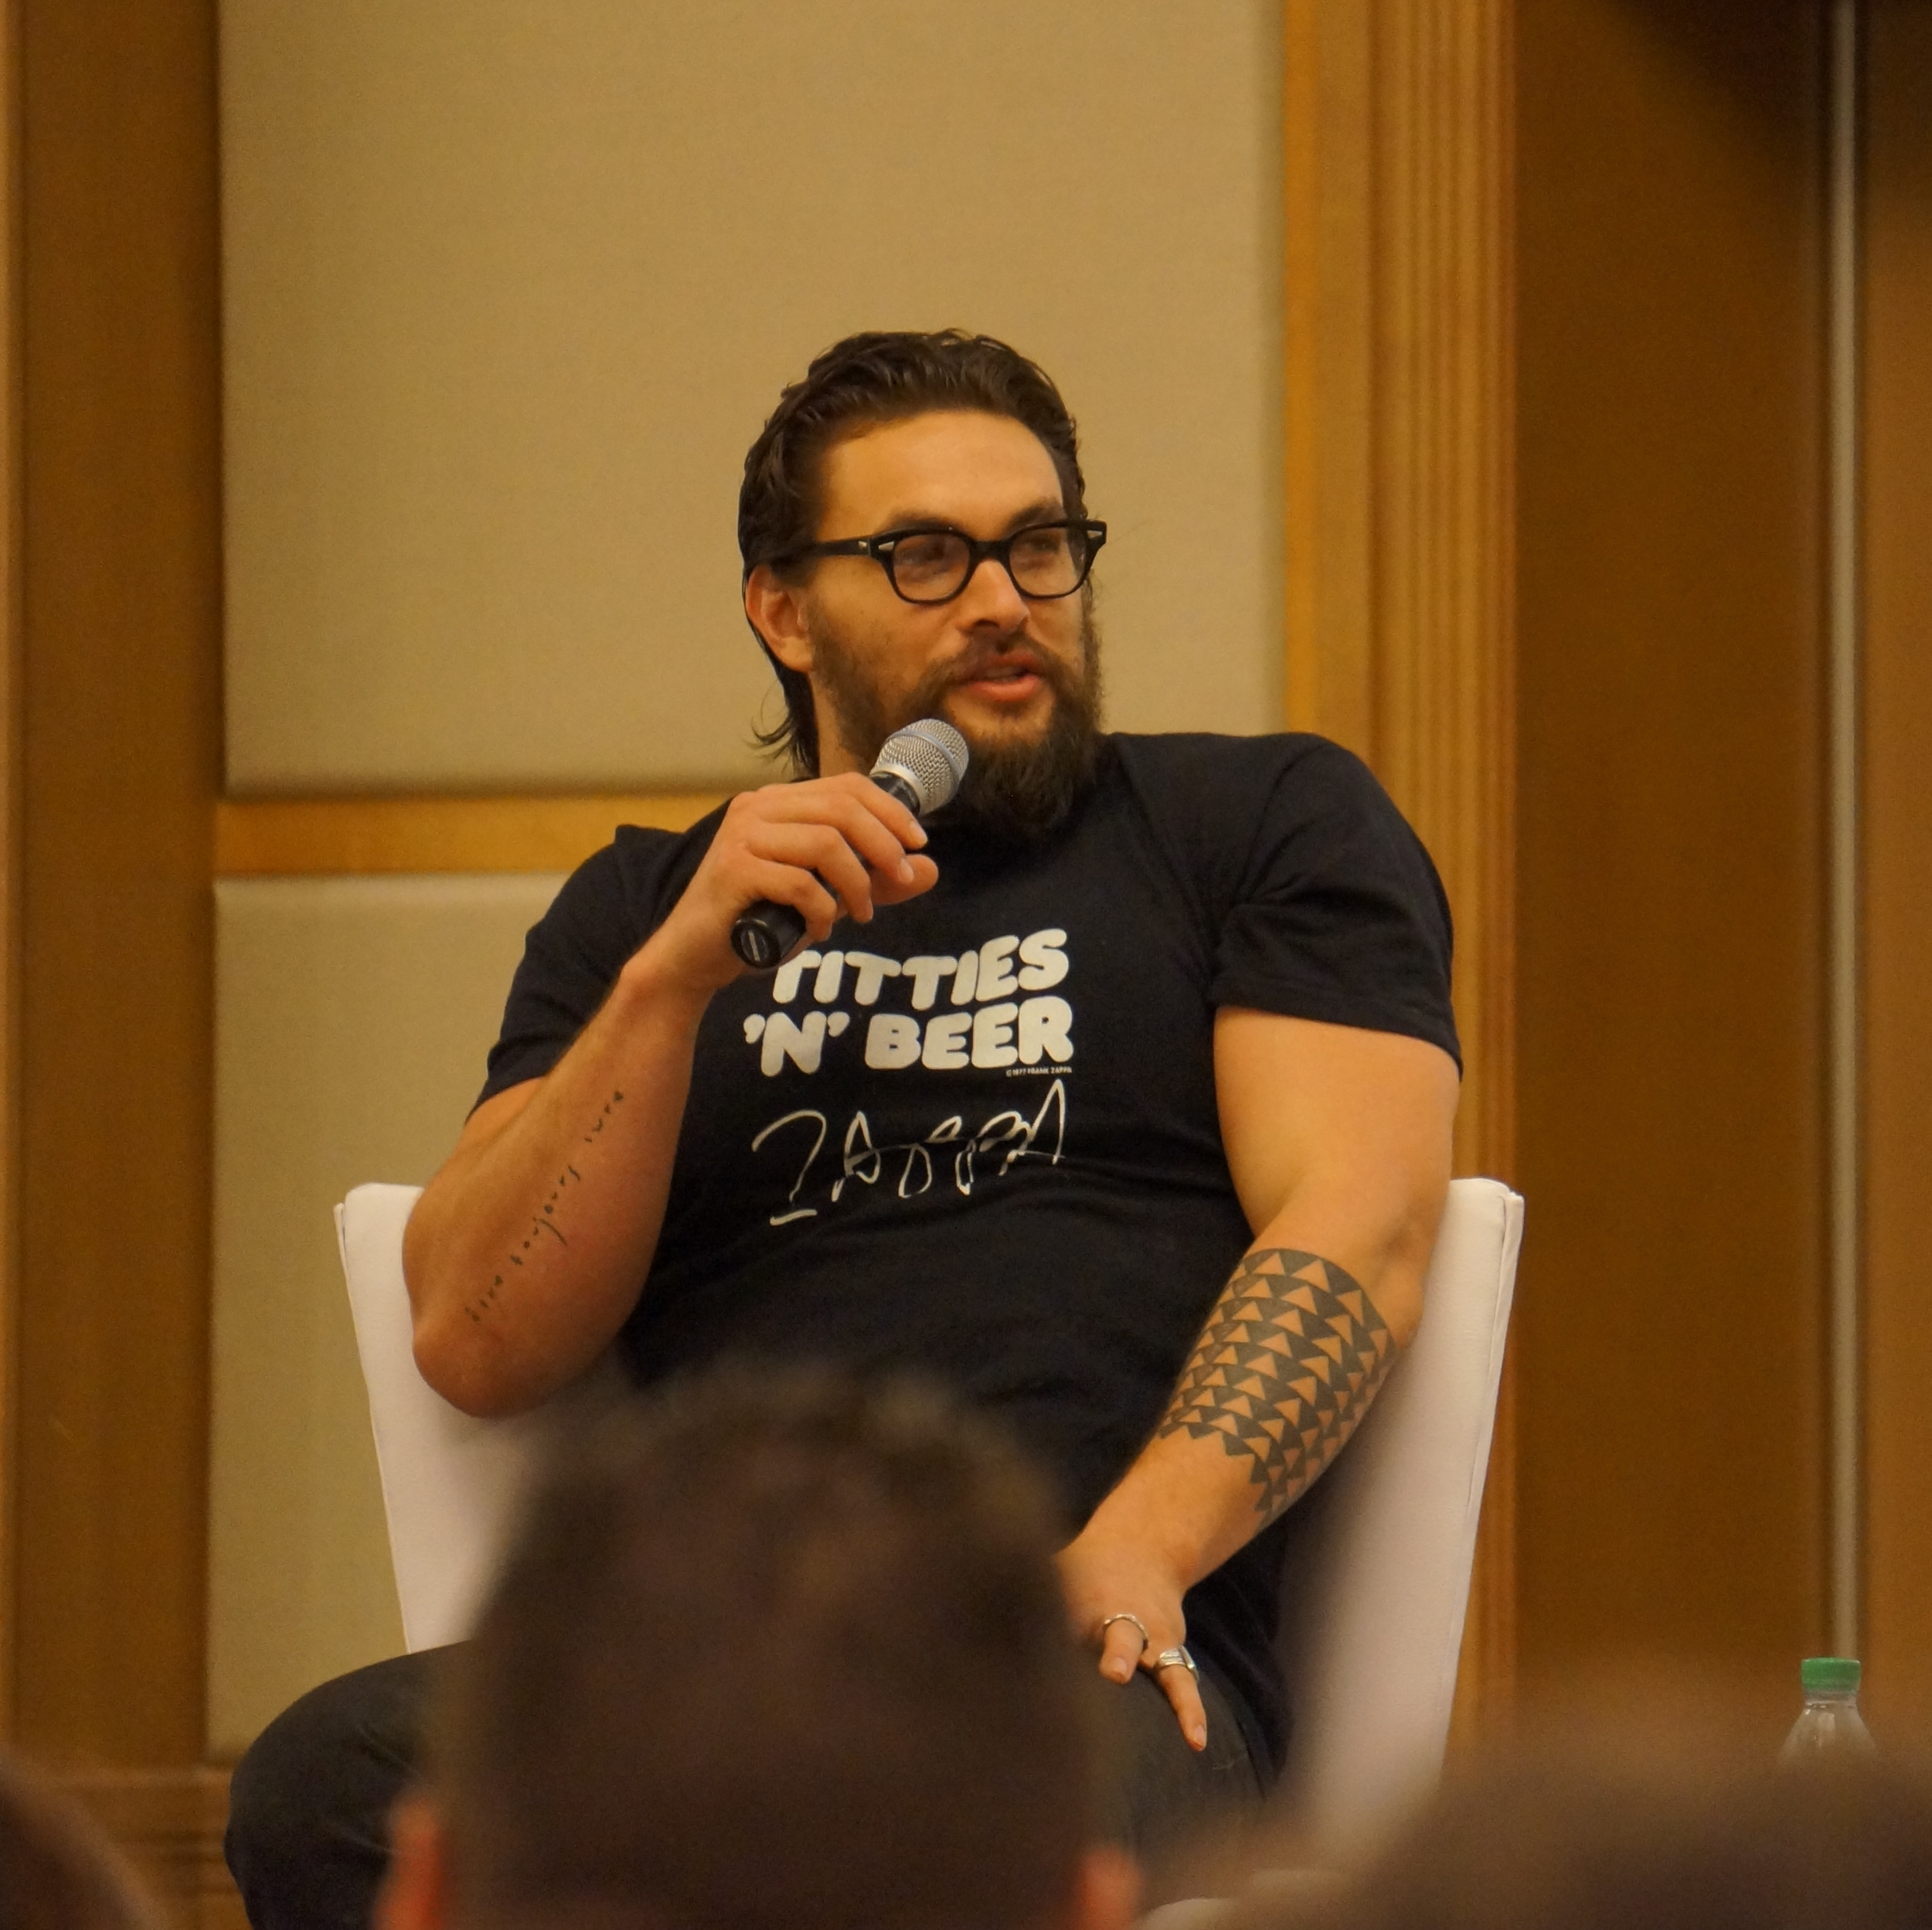 Jason Momoa had his own panel as well.